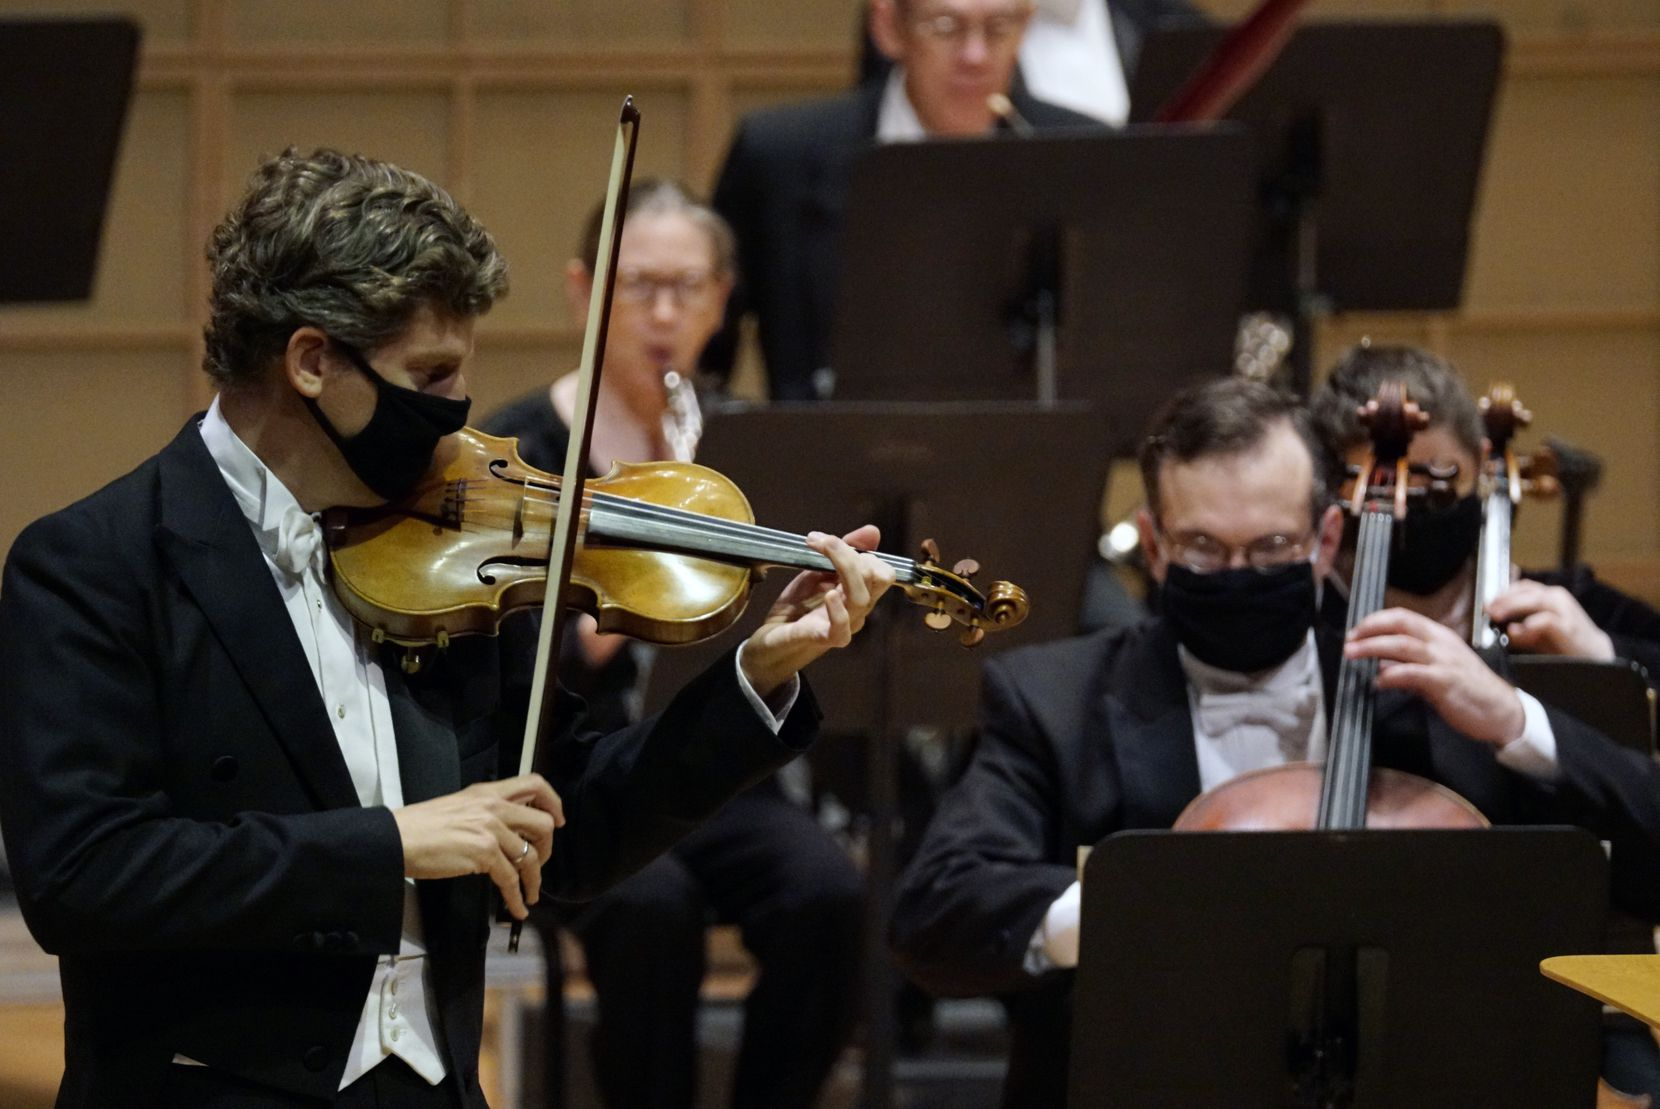 Violinist James Ehnes performs with the Dallas Symphony Orchestra at the Meyerson Symphony Center in Dallas, Texas on March 11.